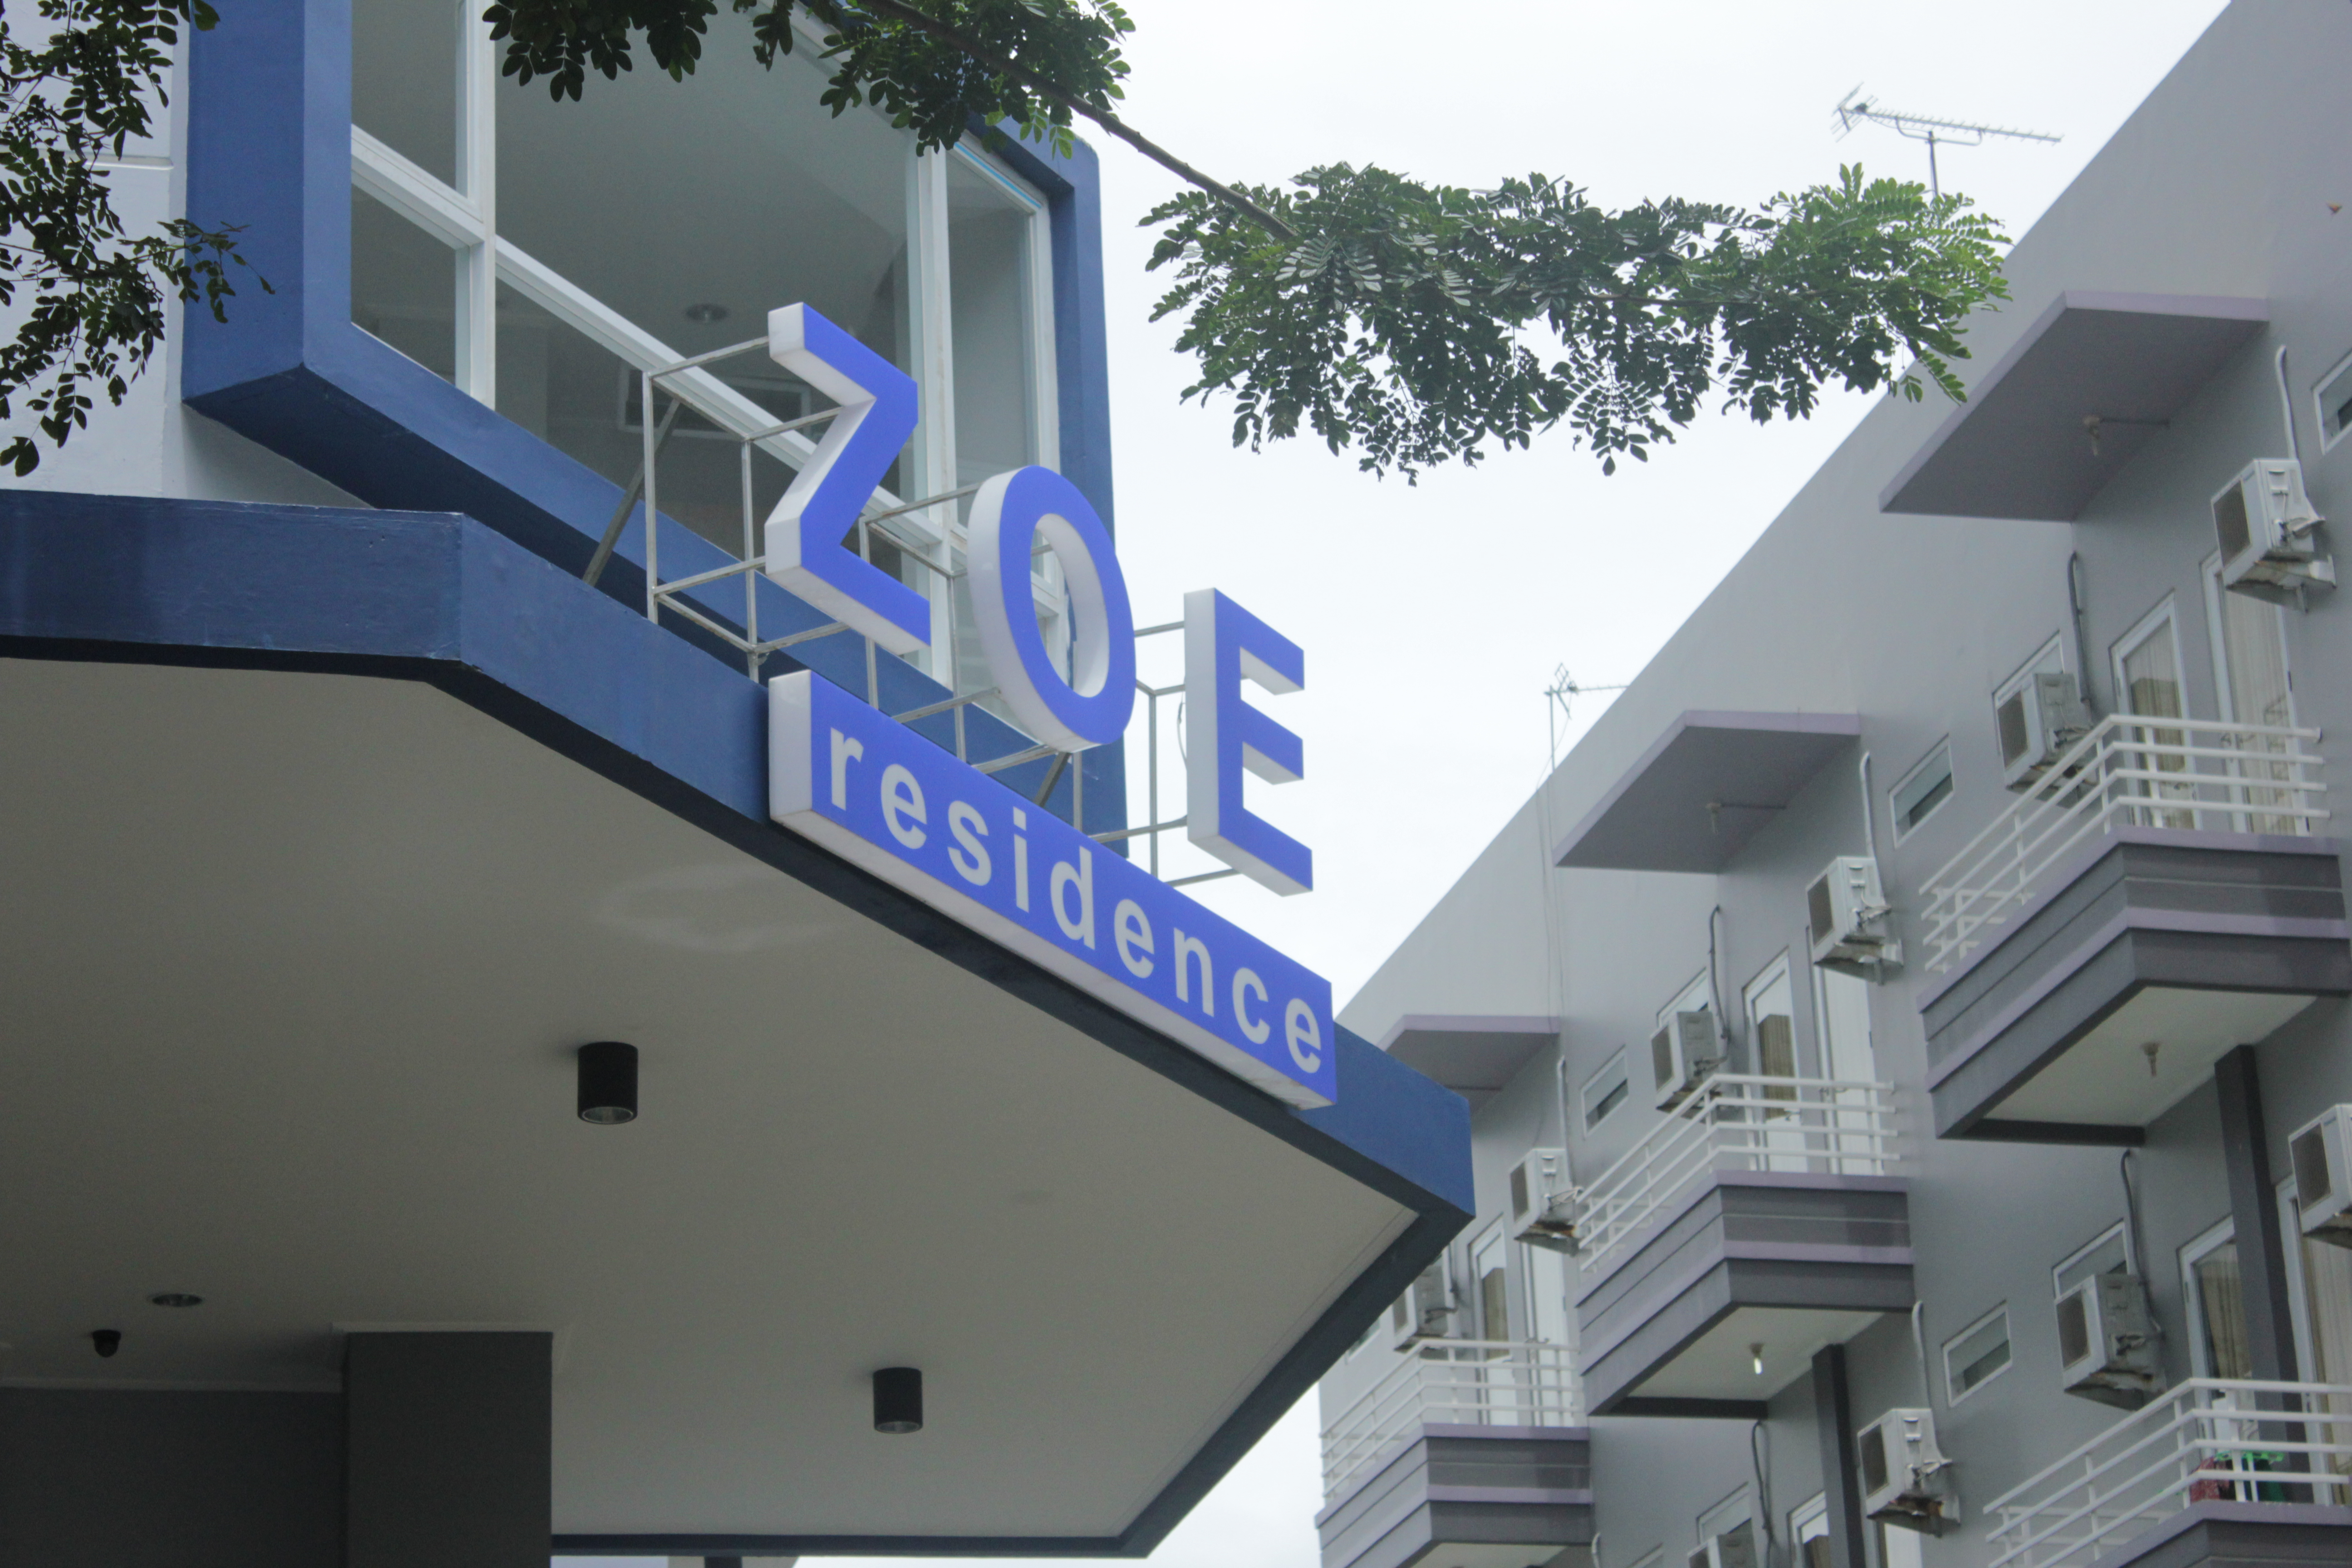 About Zoe Residence